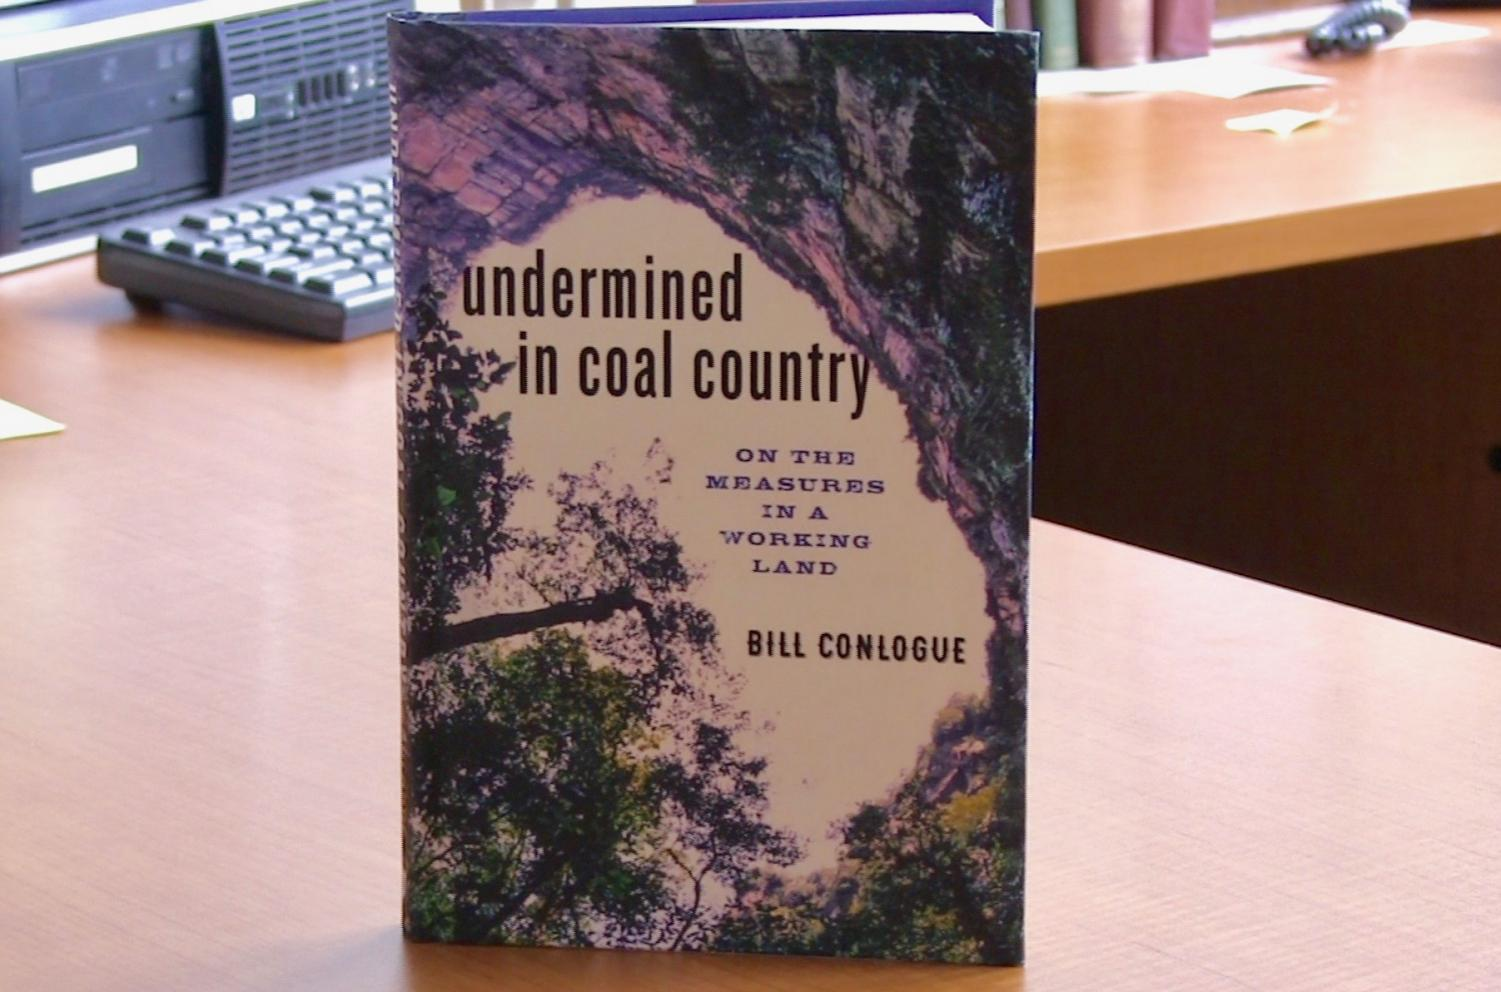 English professor writes book on coal mining's impact at Marywood